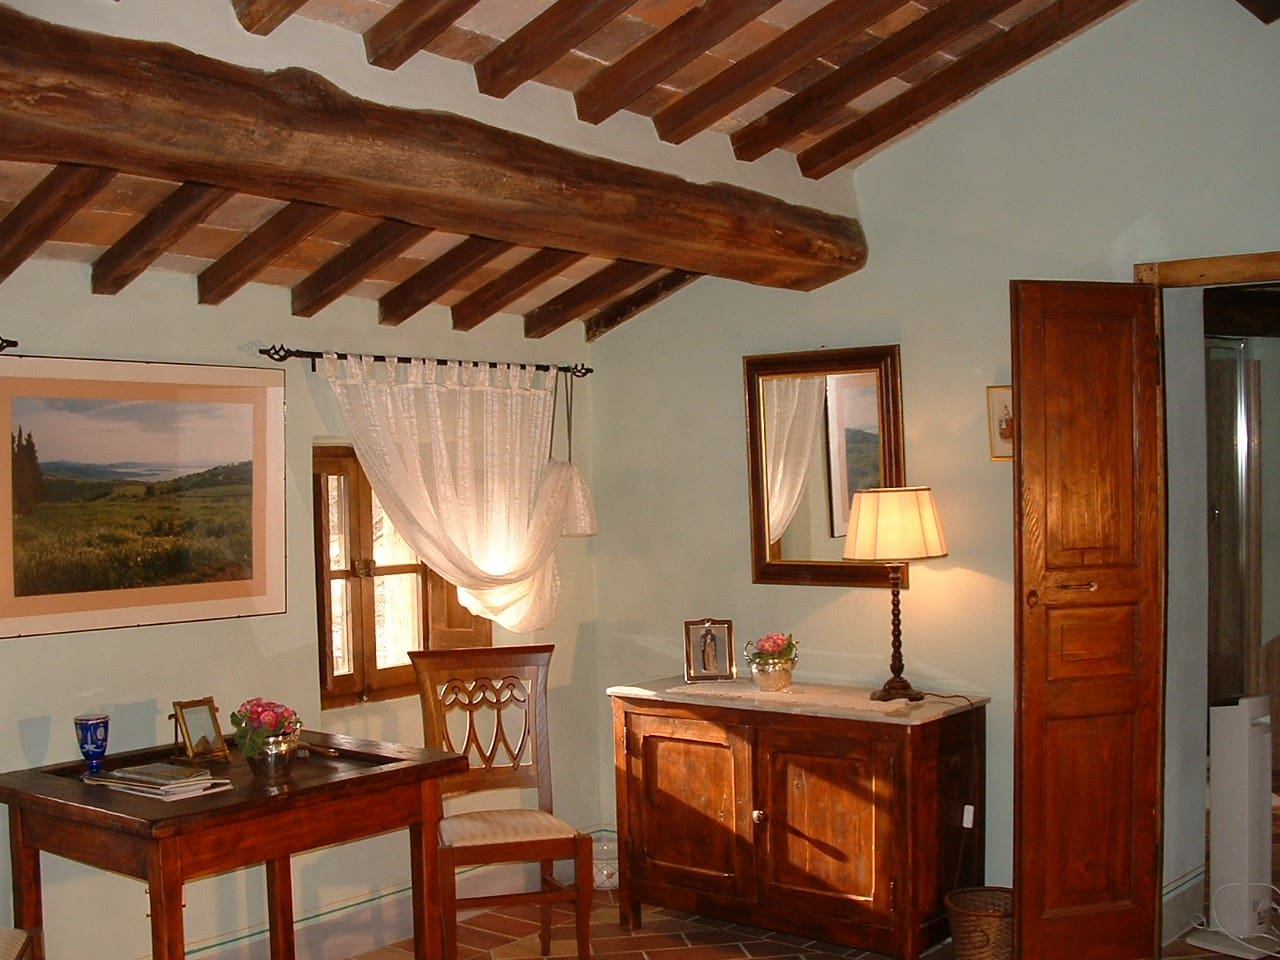 Santa Chiara Private room in Umbria